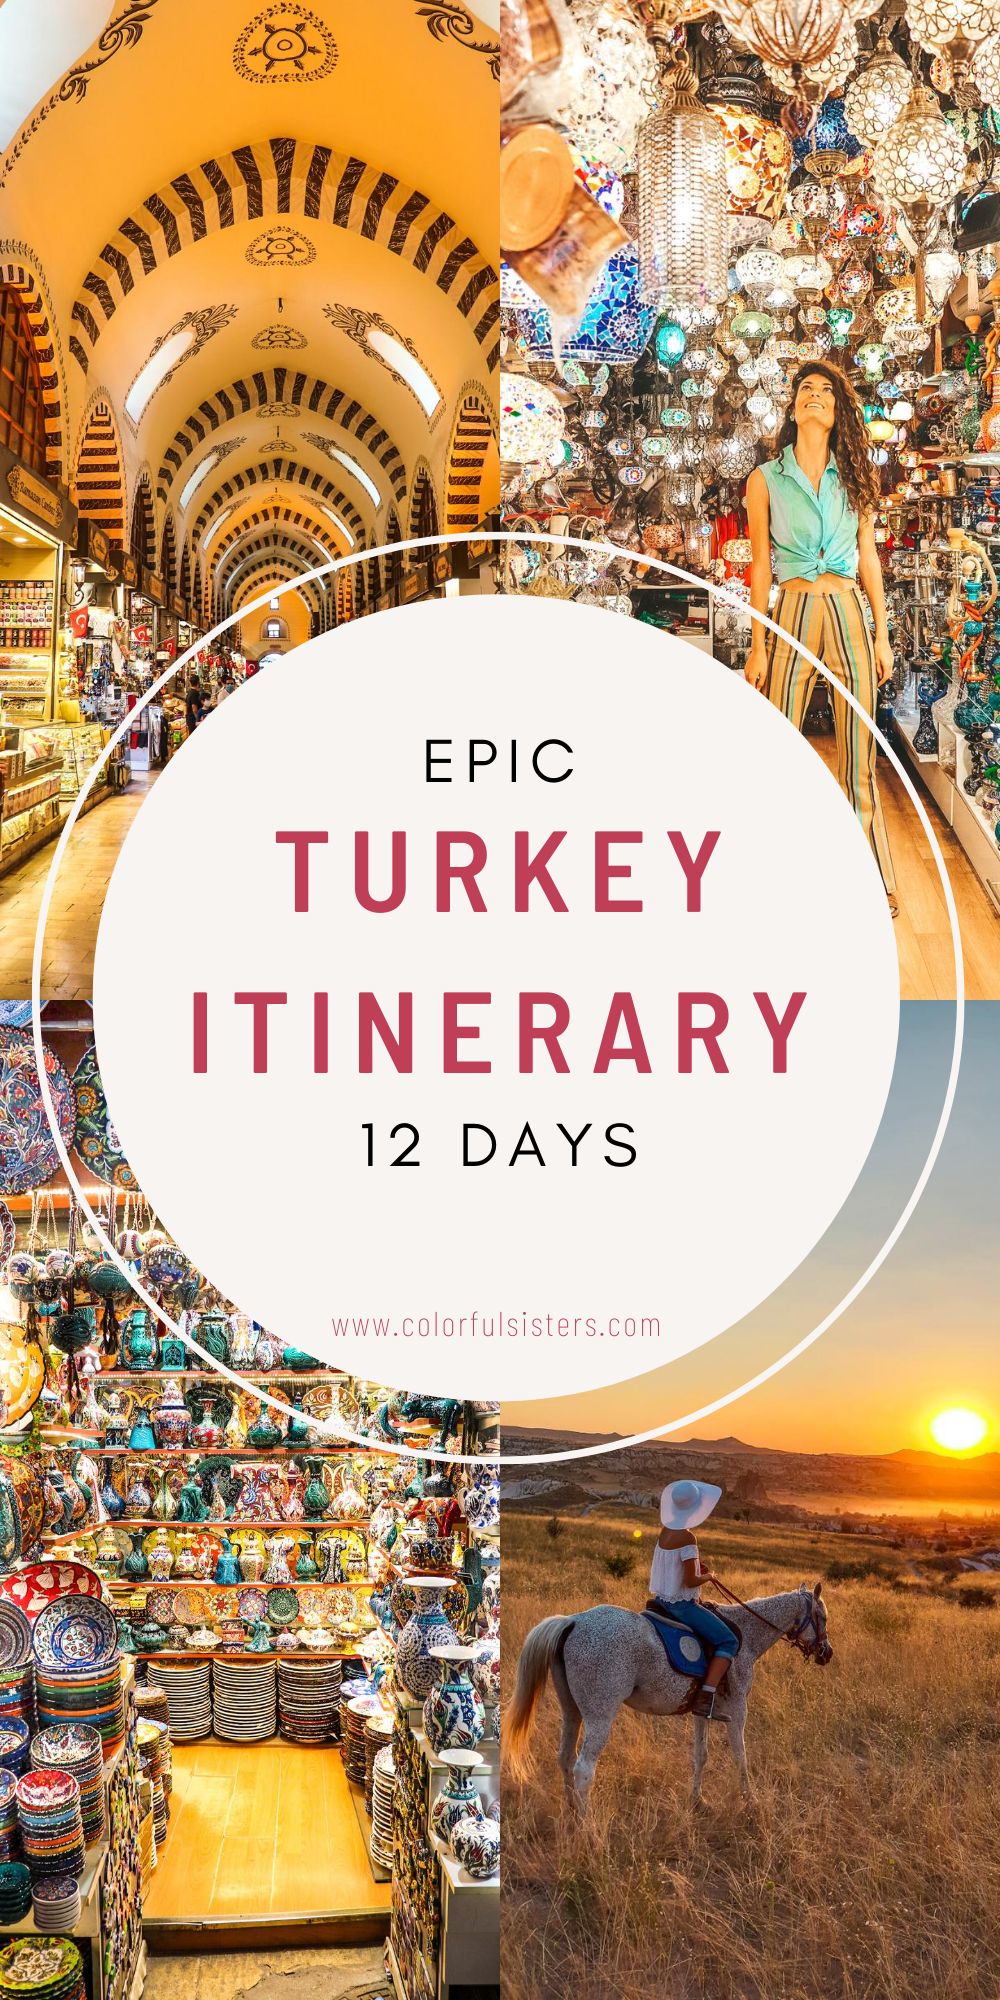 Epic Travel Itinerary to Turkey - 12 Days, Travel Turkey, Explore Turkey #Turkey #Travel #TurkeyTravel #TravelInspo